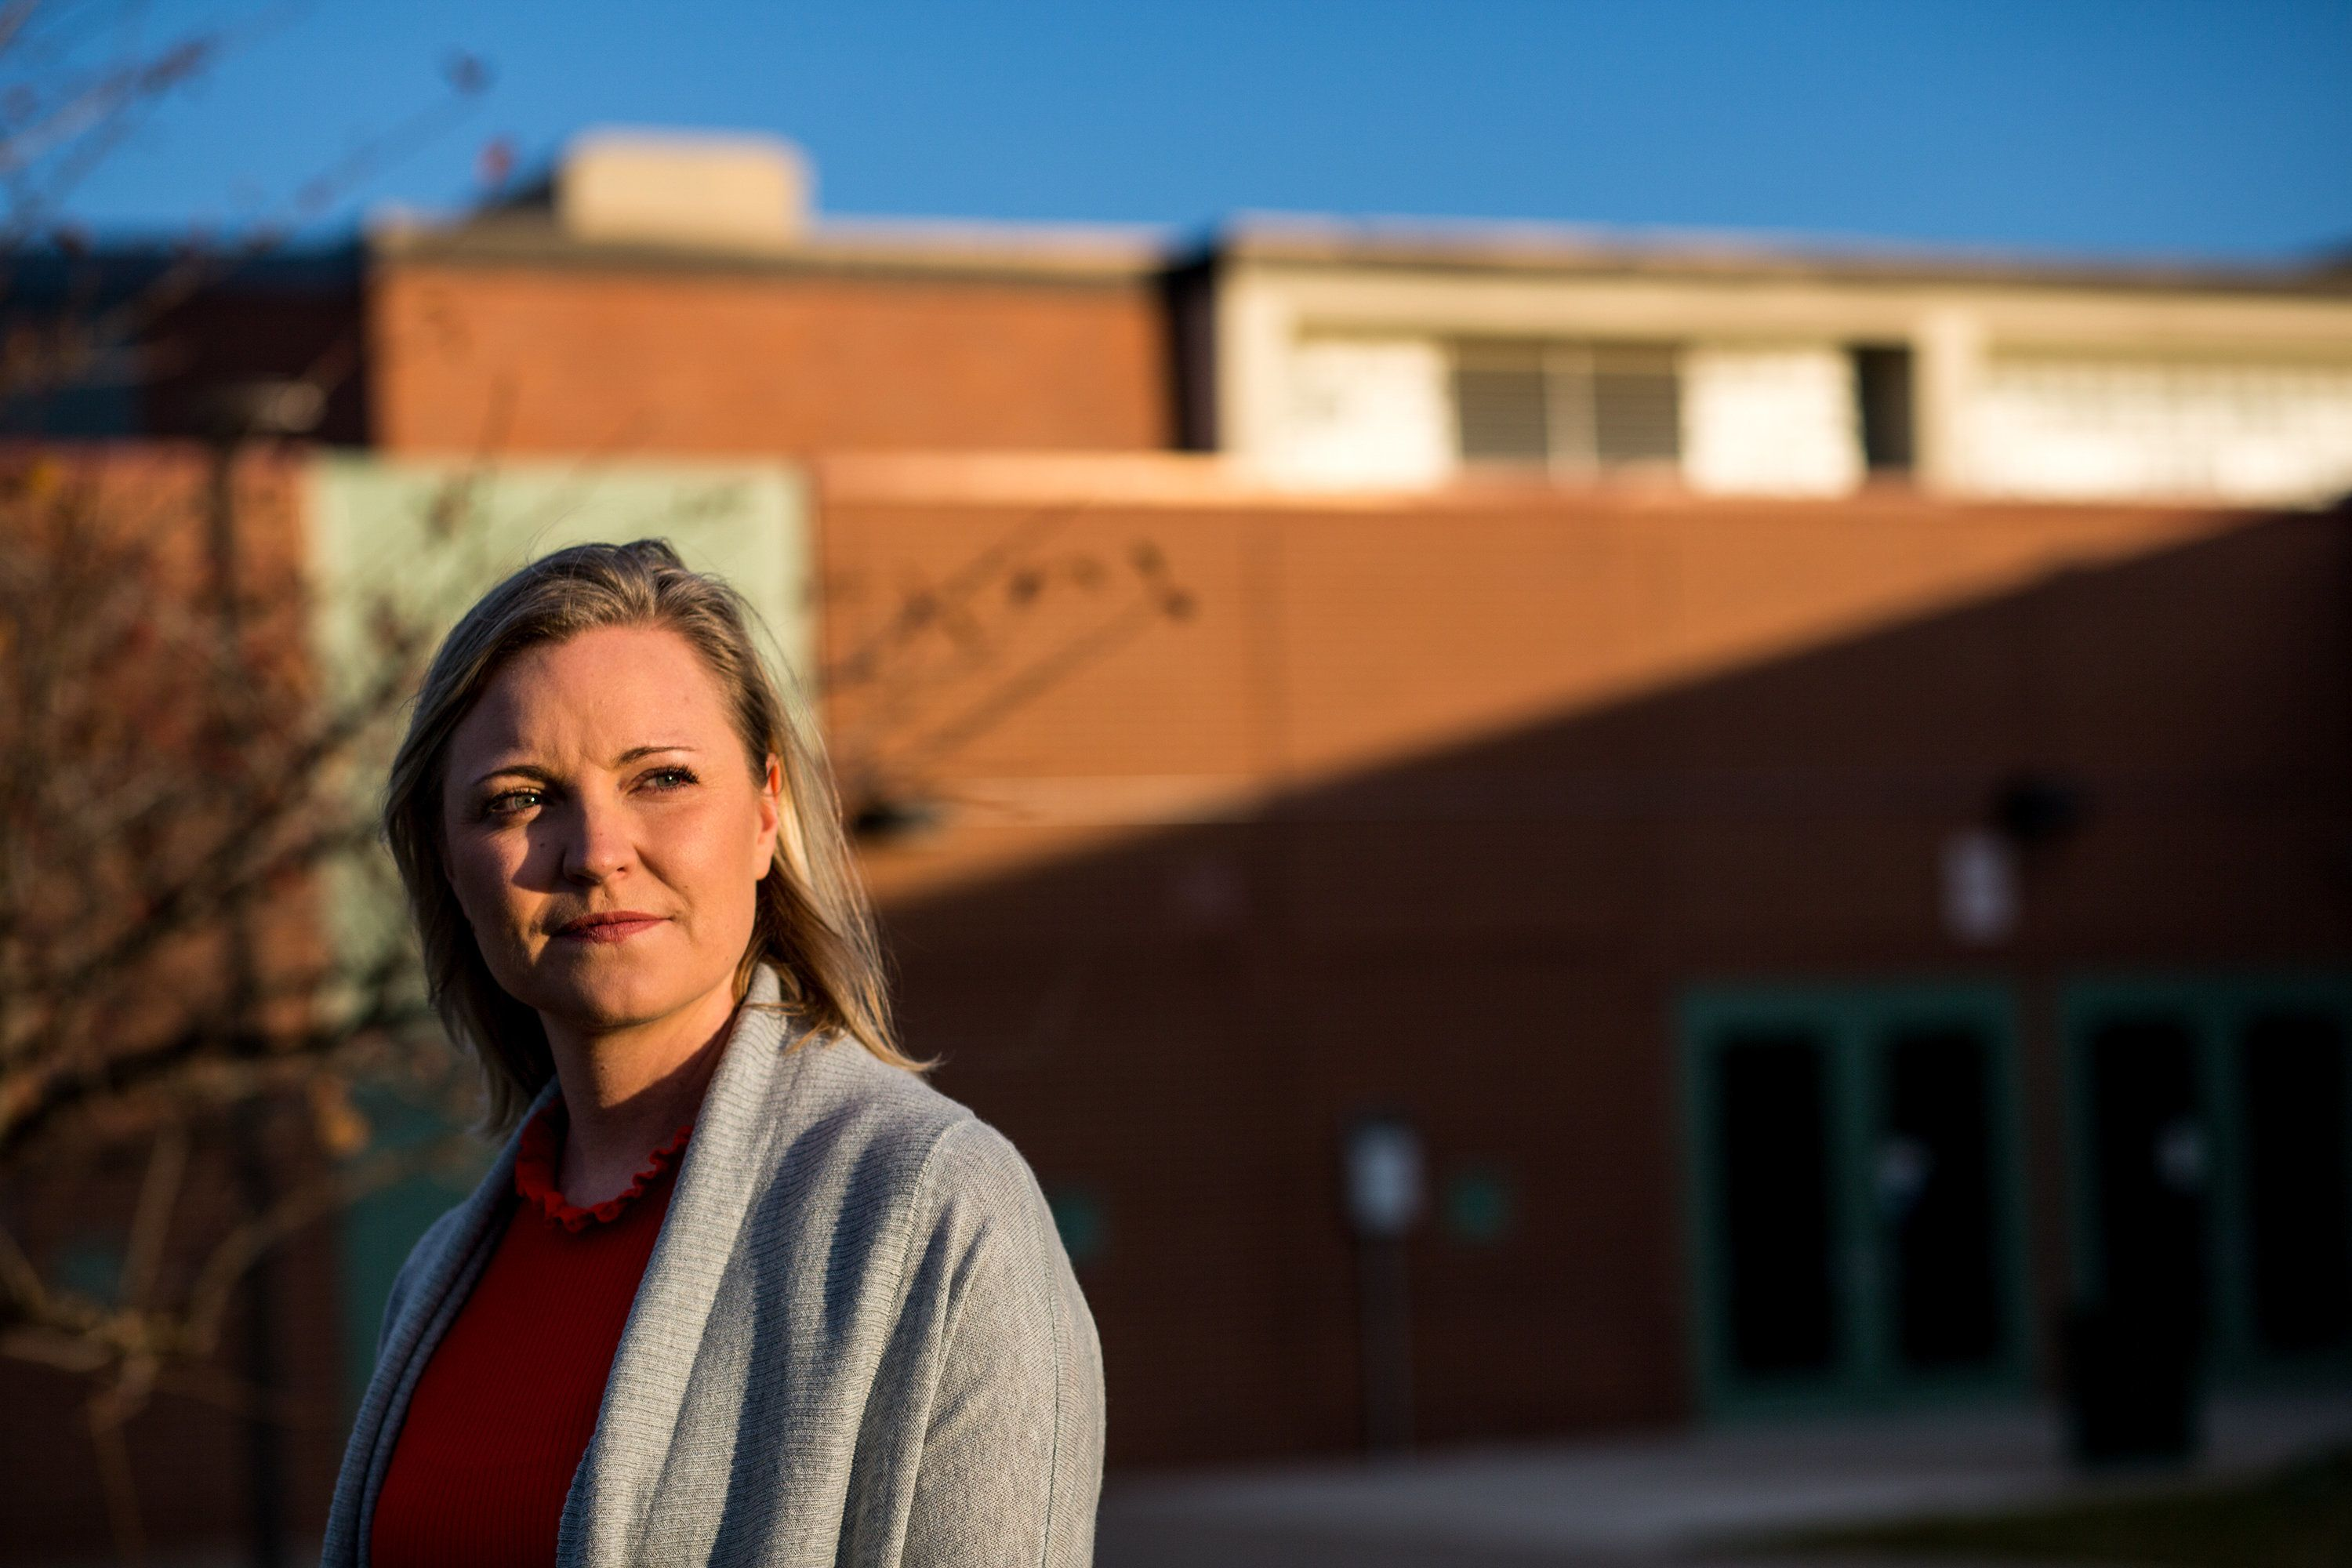 Heather Martin poses for a portrait at Aurora Central High School, where she teaches 12th grade English, in Aurora, Colo. on Nov. 8, 2017. Martin is a survivor of the Columbine High School shooting in 1999. She is now the co-founder of the Rebels Project which provides support to survivors in the aftermath of a shooting. (Photo by Autumn Parry)